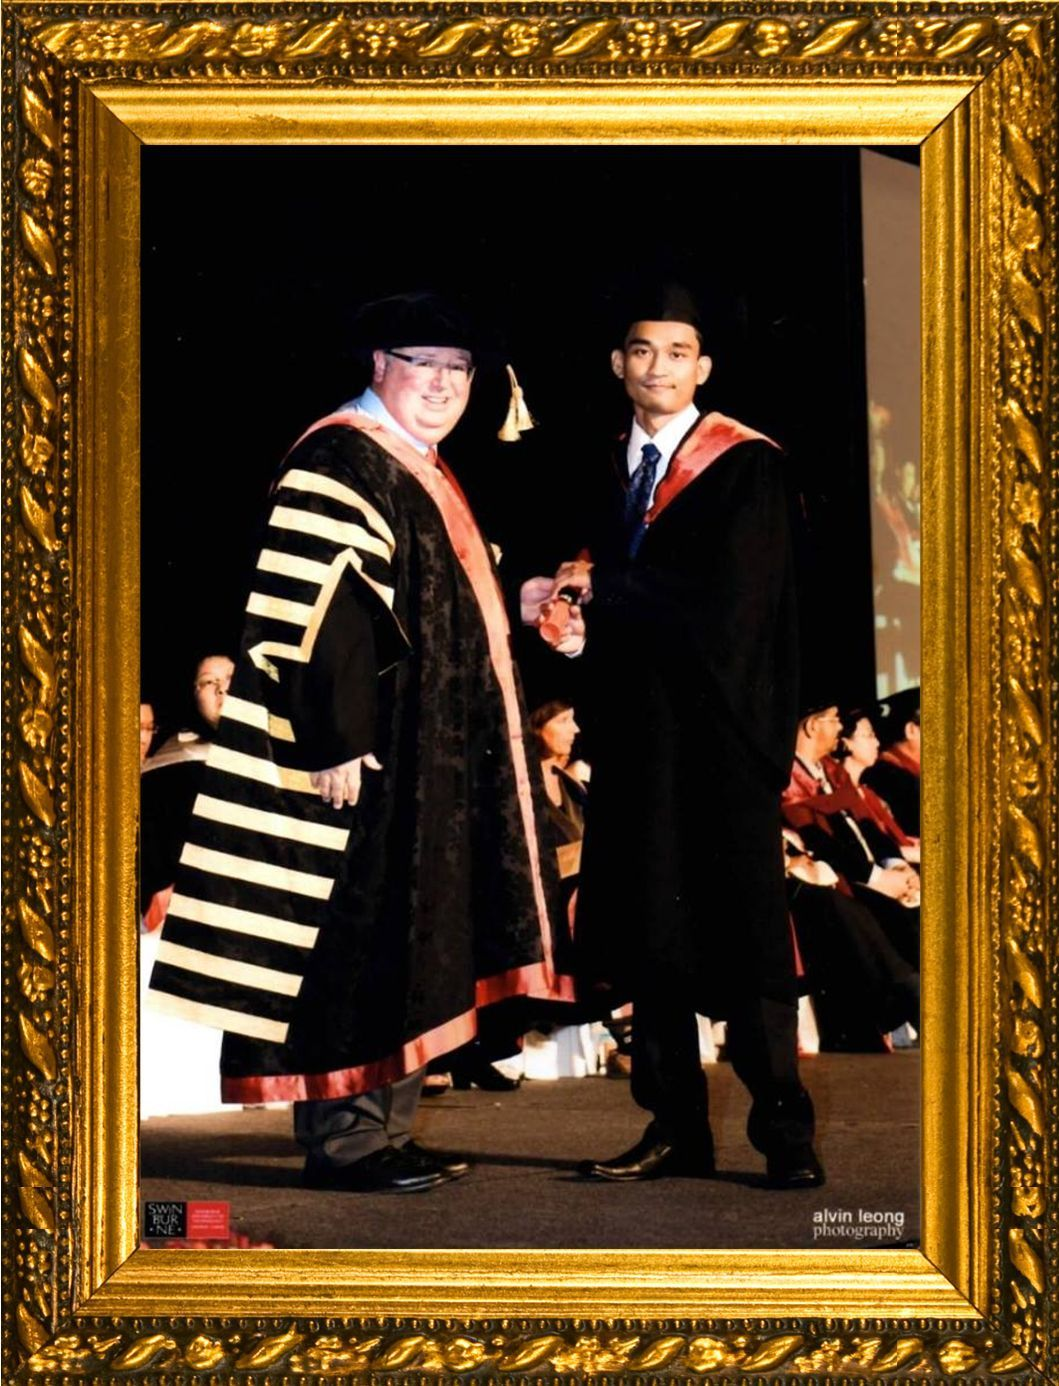 B.Sc (Computer Science) Graduation Ceremony, Swinburne University of Technology